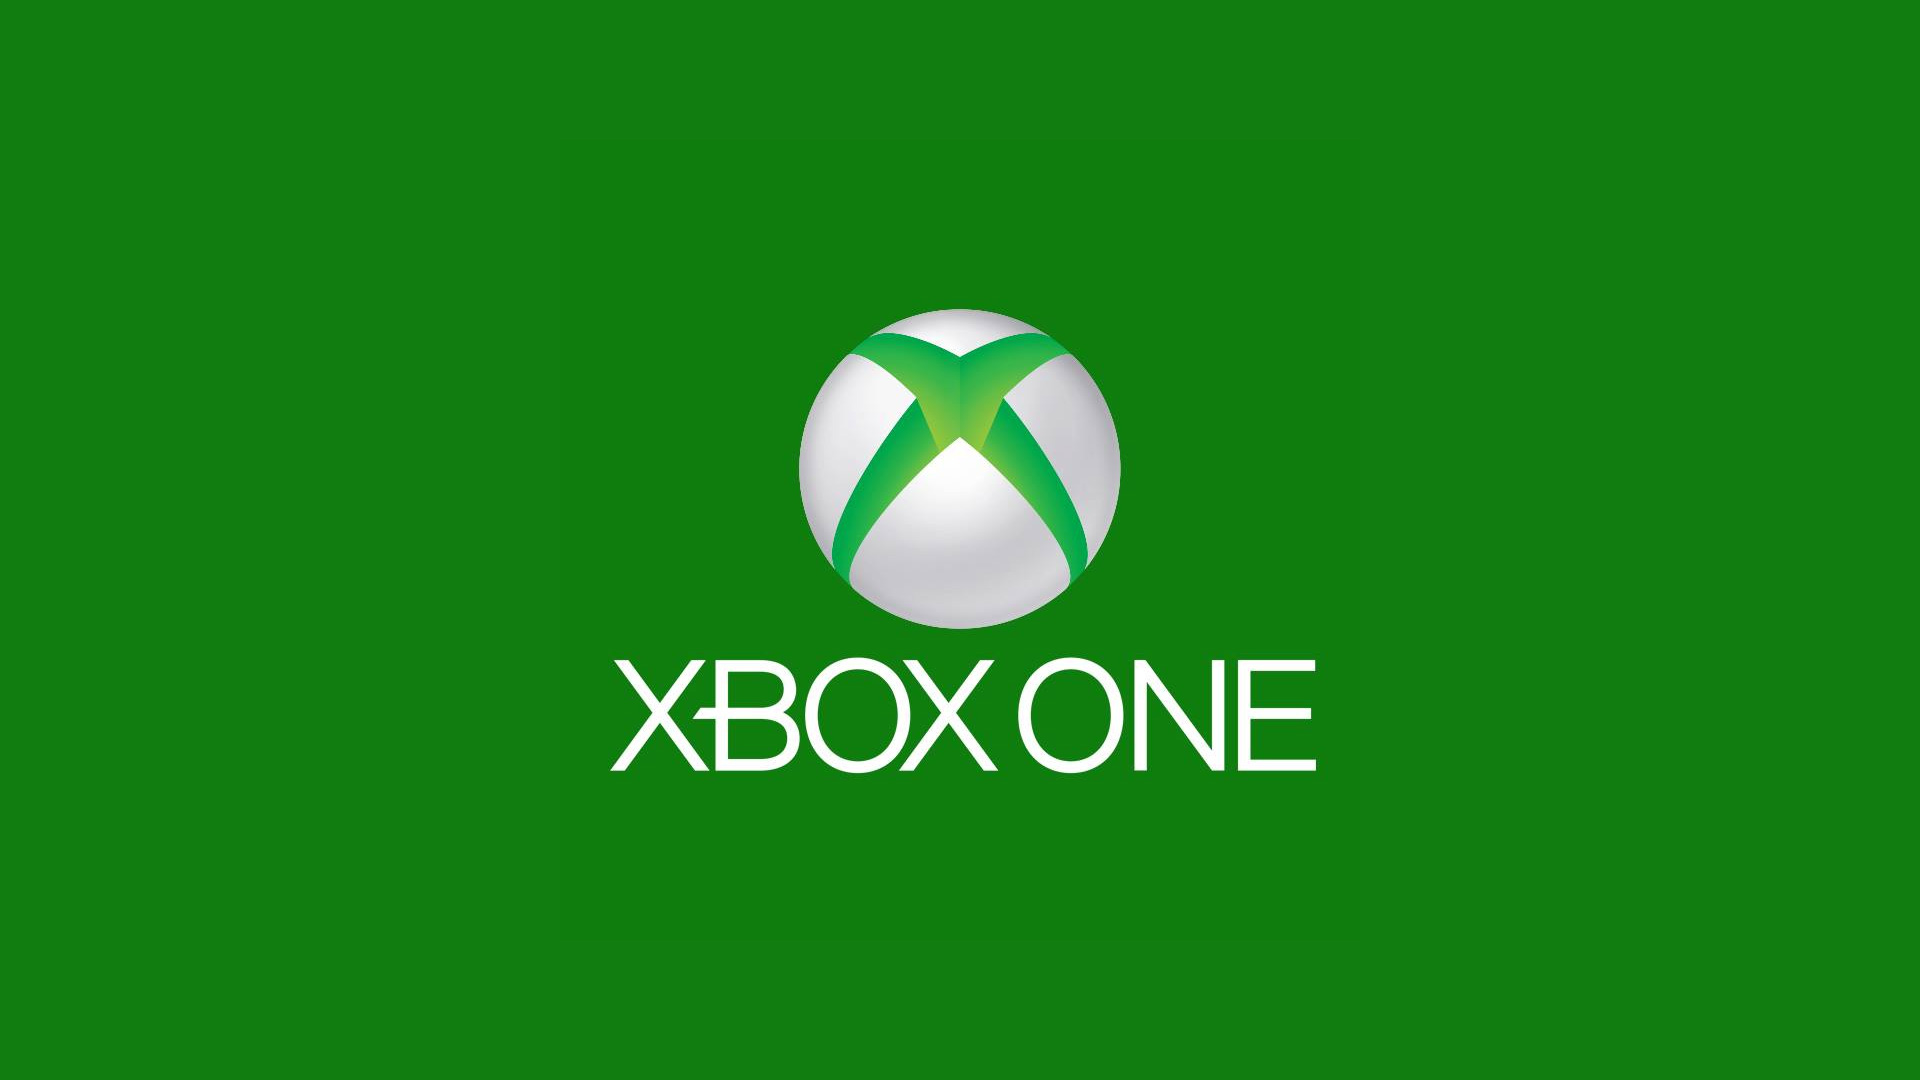 Xbox One – 7 Millionen mal verkauft in den USA | GAMECONTRAST